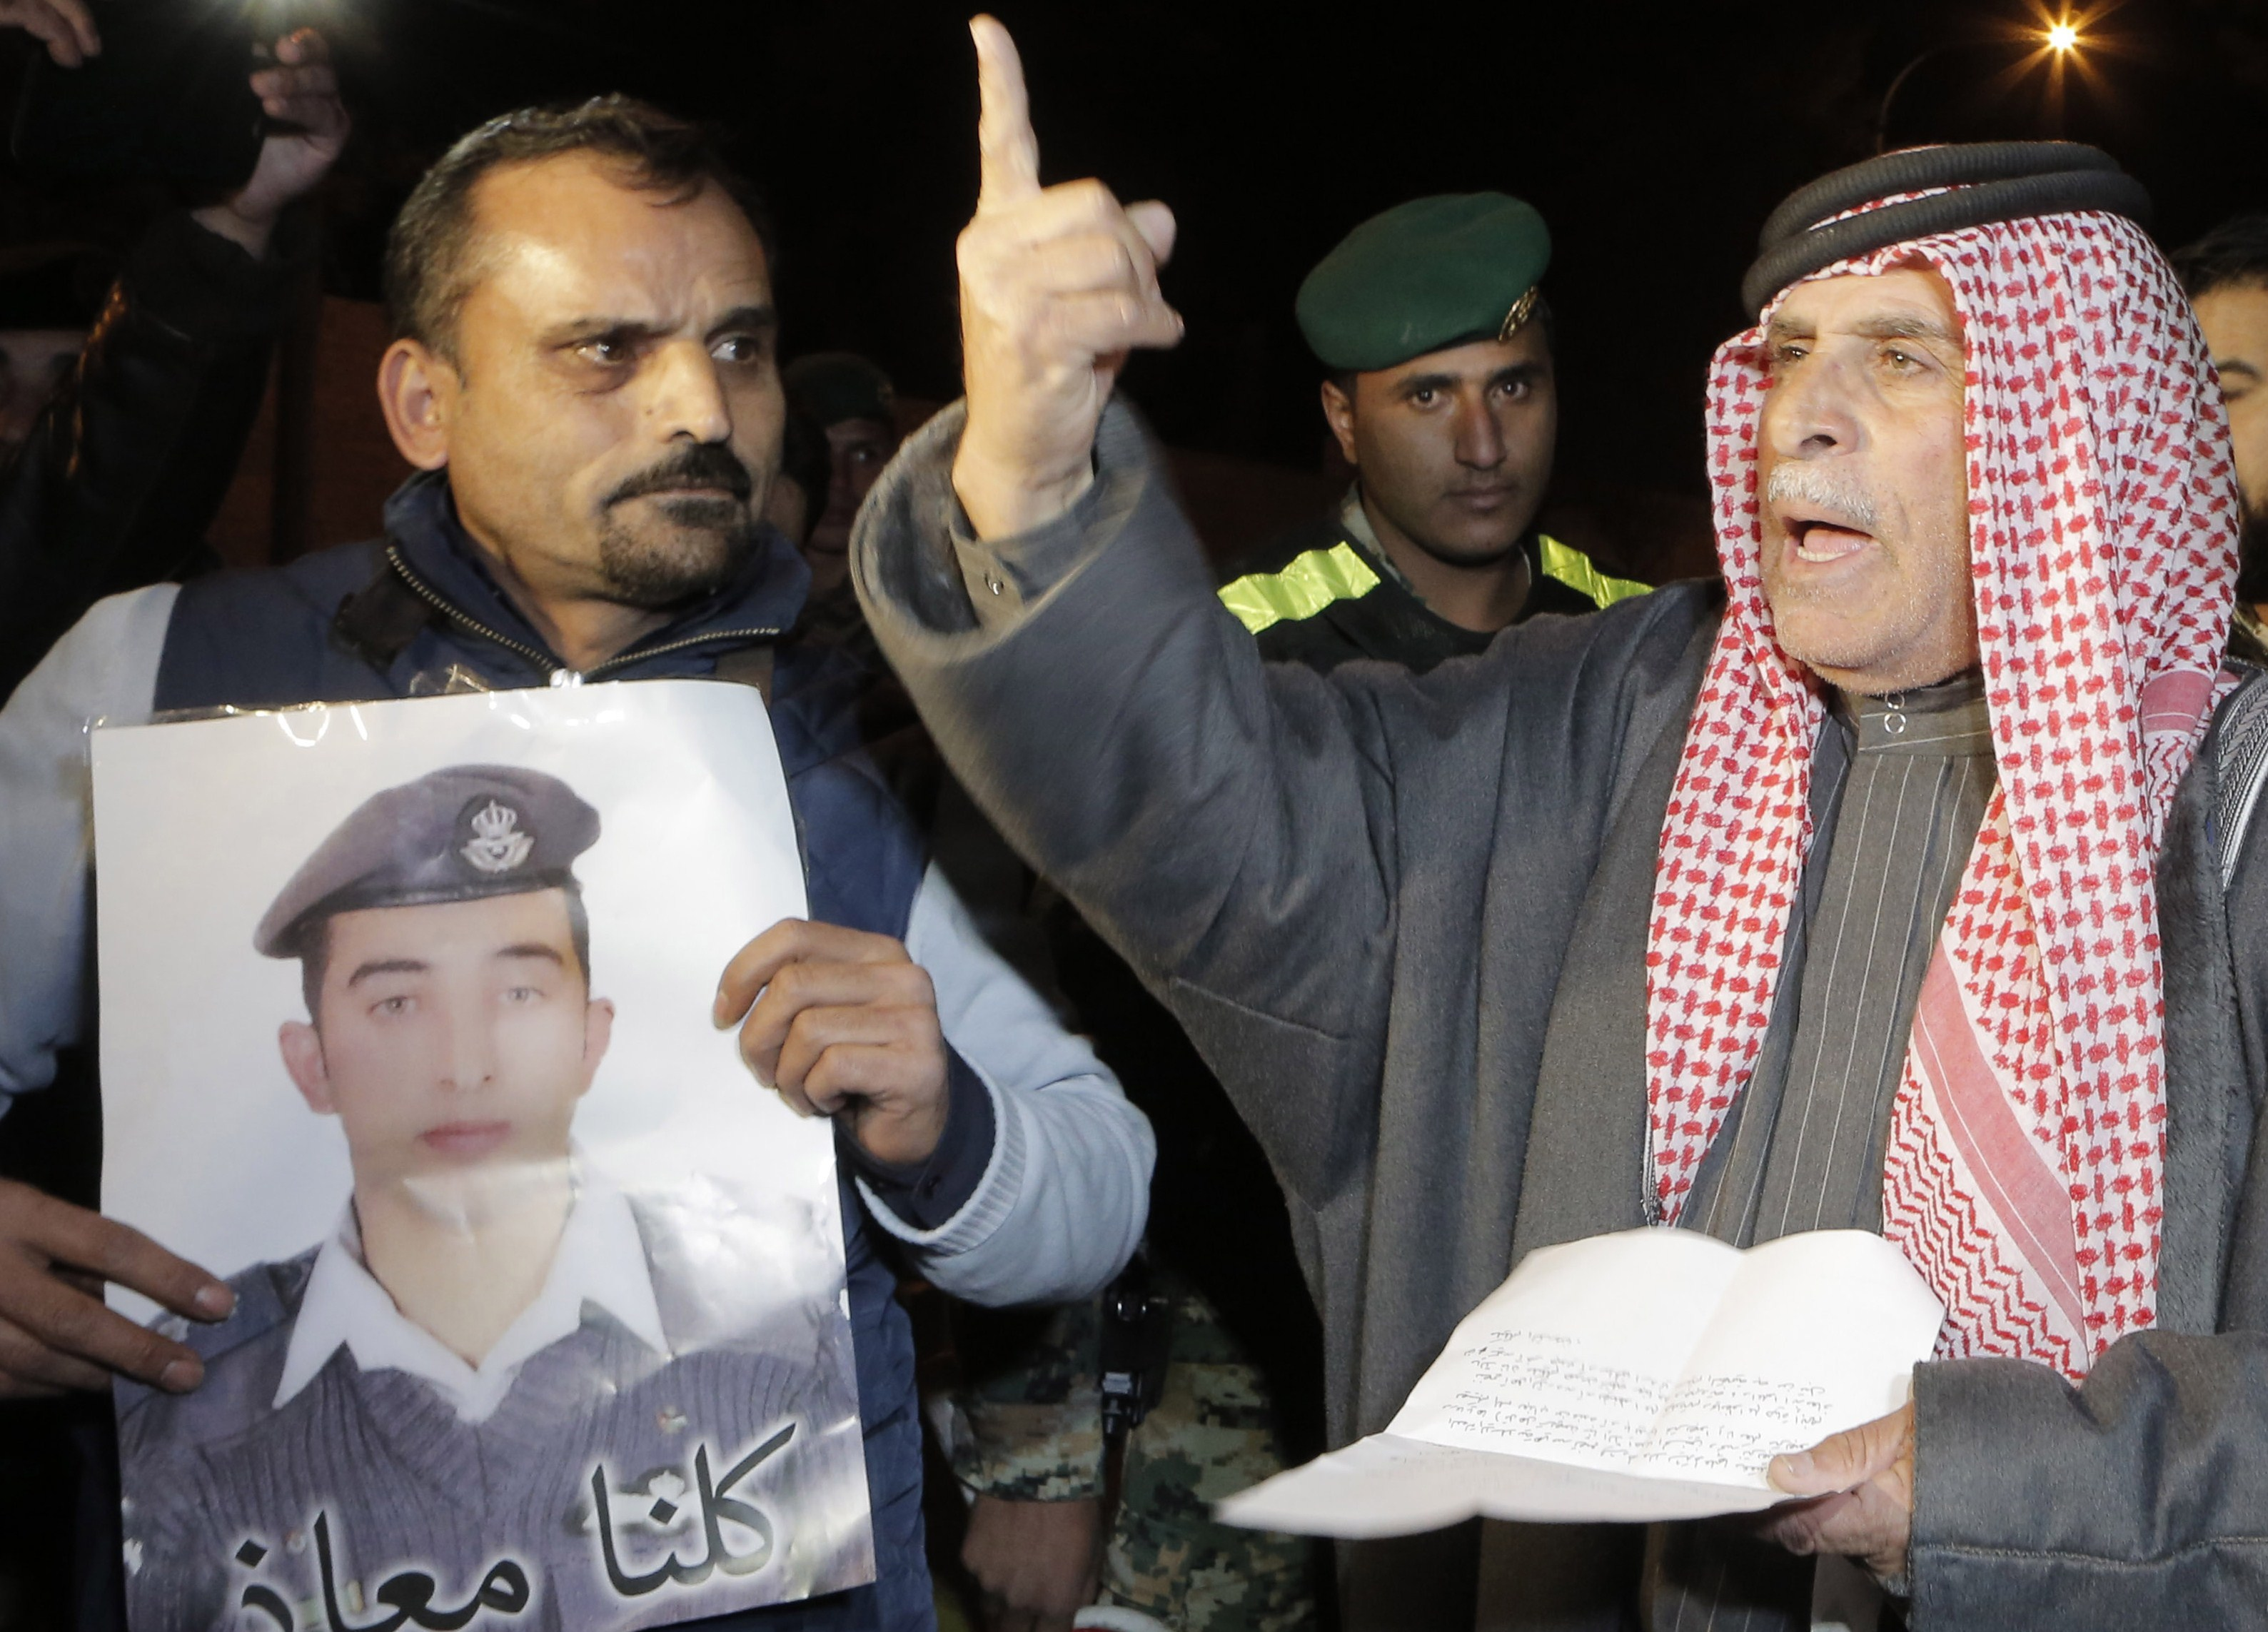 Safi al-Kasasbeh, right, the father of Jordanian pilot Moaz al-Kasasbeh (portrait), who was captured by ISIS militants on December 24, protests outside the Royal court in Amman on Jan. 28, 2015.